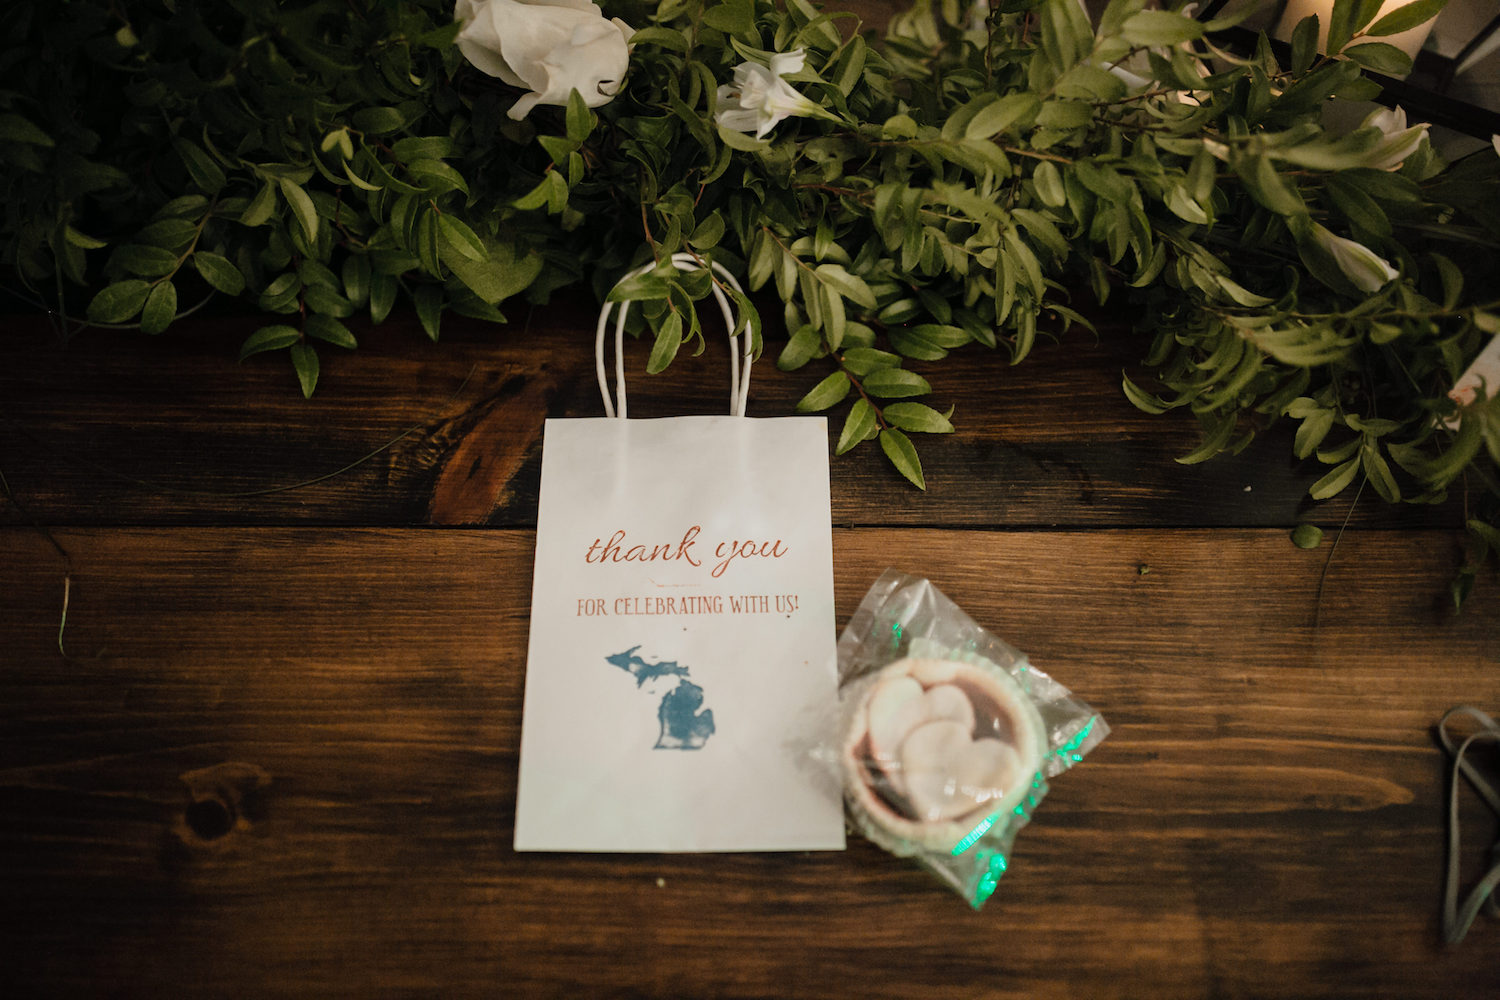 Thank you bags for guest of Aurora cellars wedding